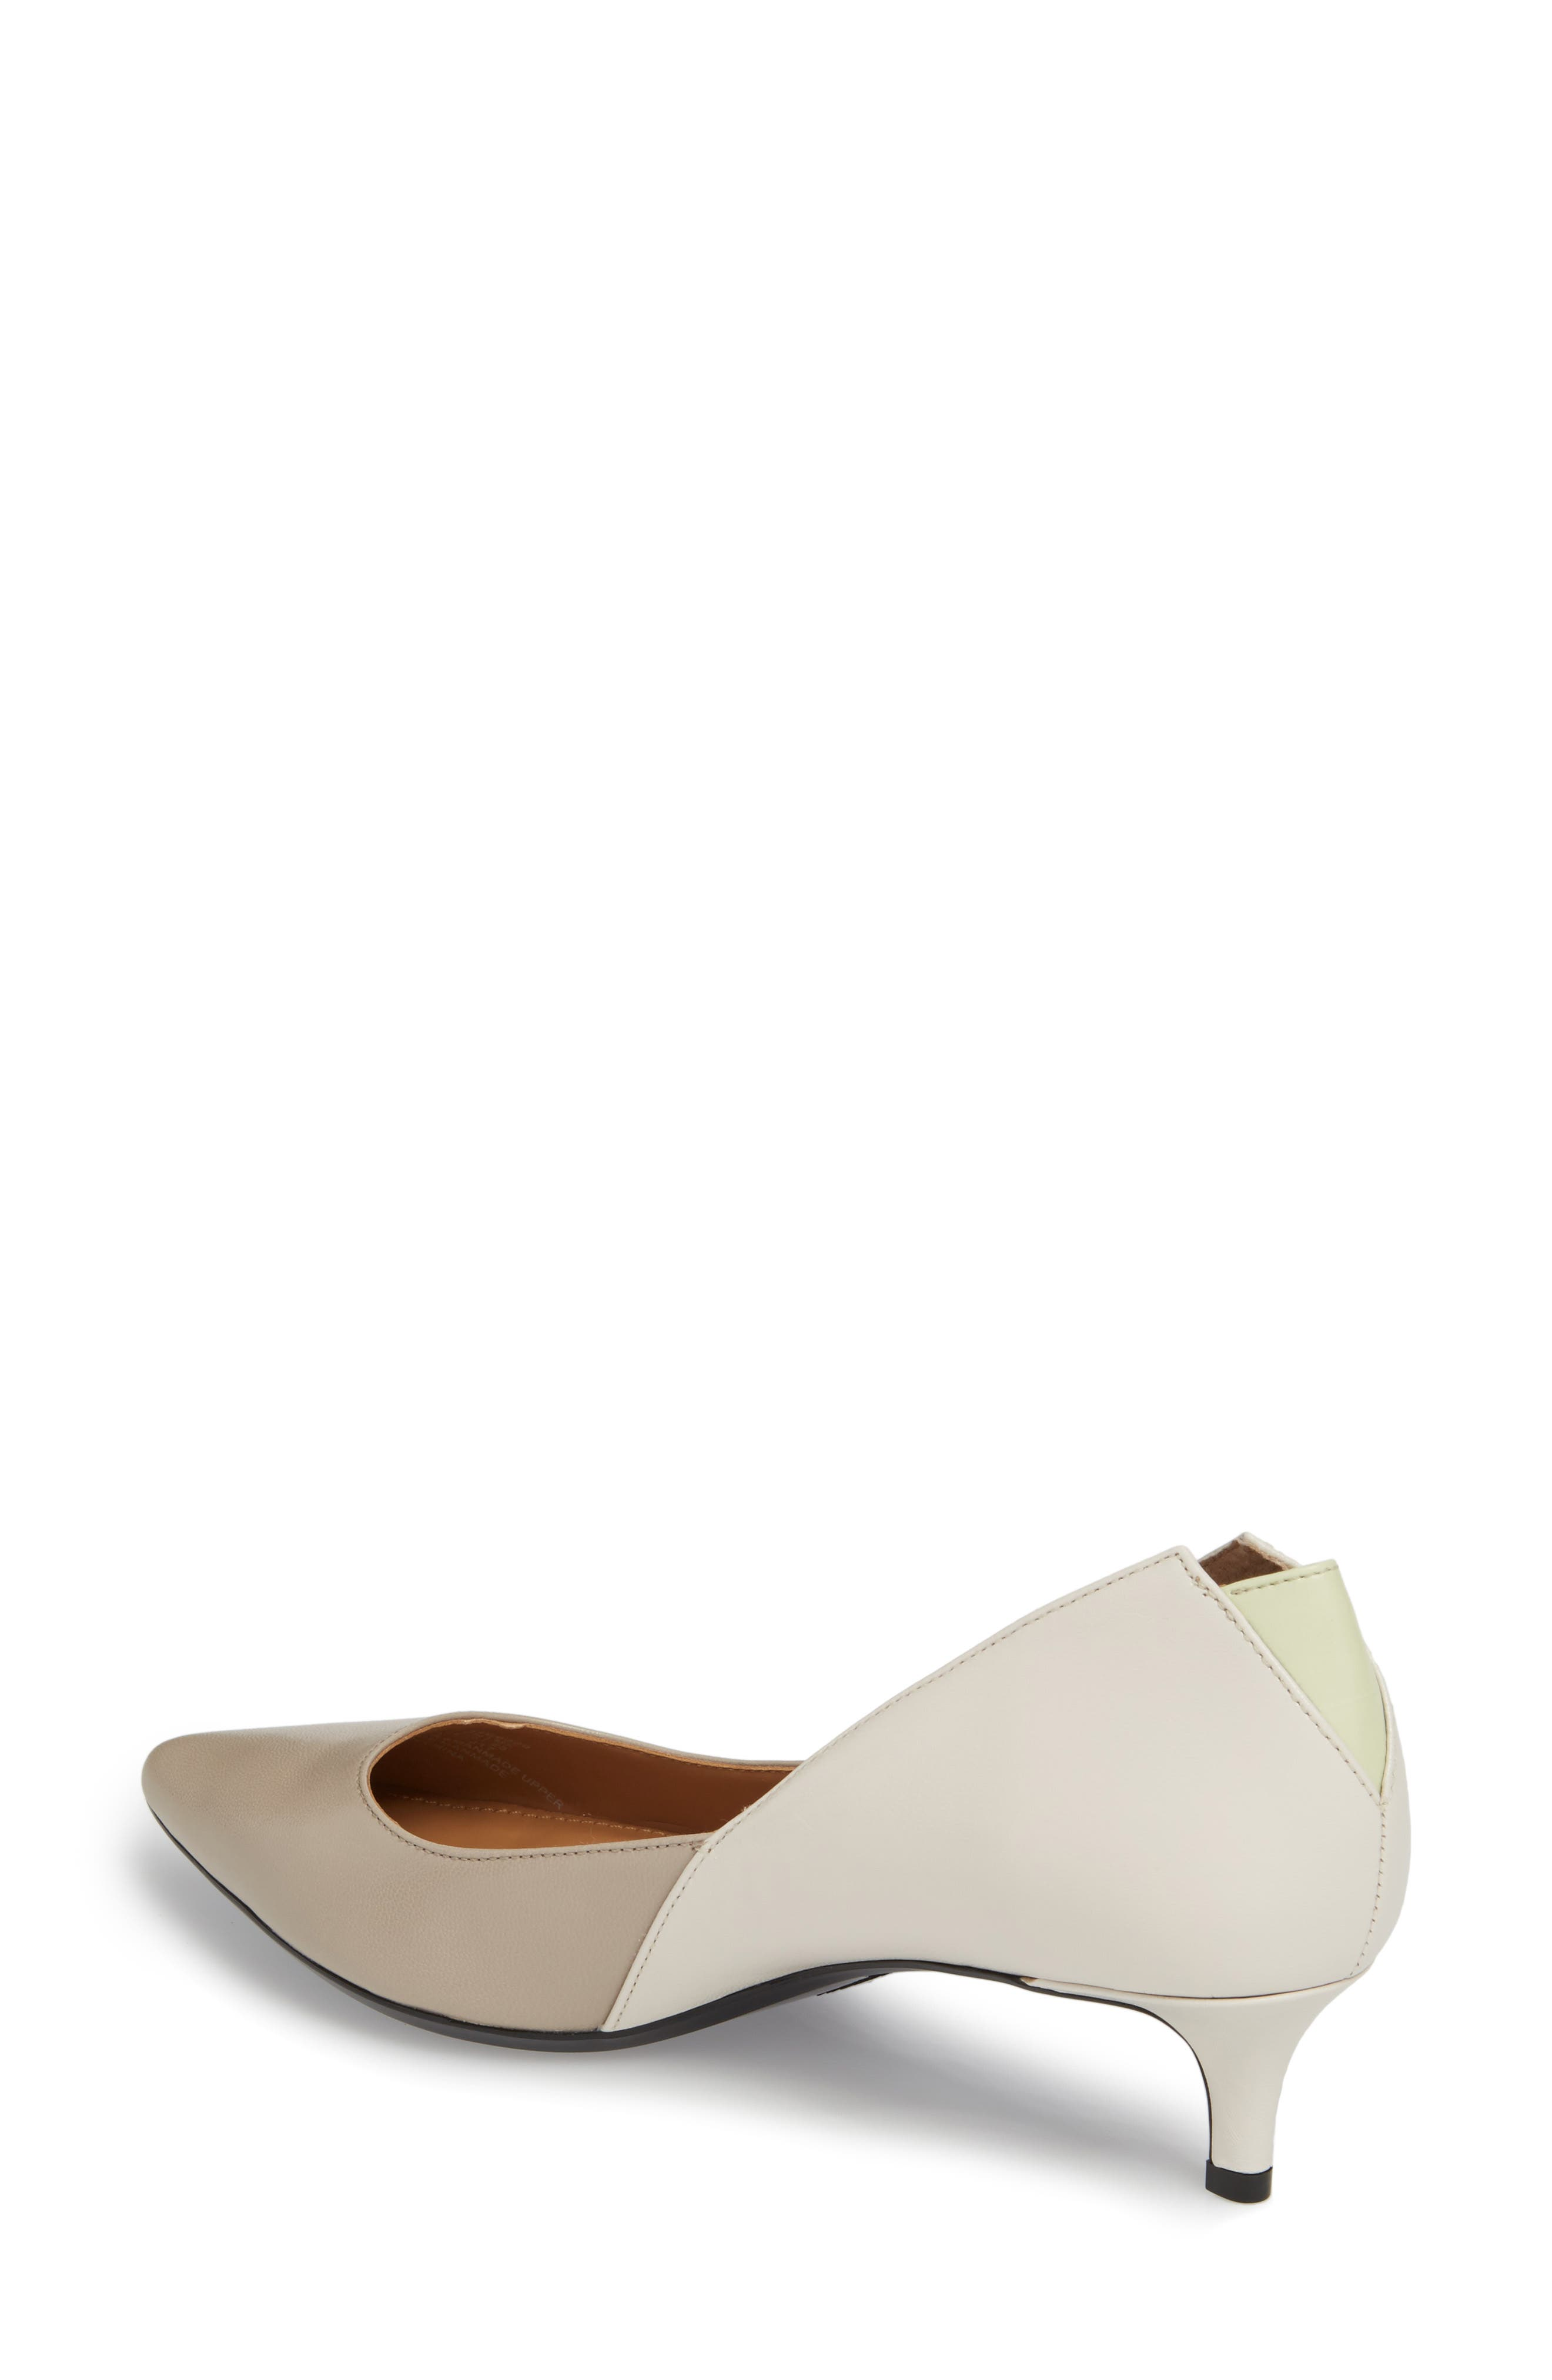 Grayce Pointy Toe Pump,                             Alternate thumbnail 2, color,                             Clay/ White Leather